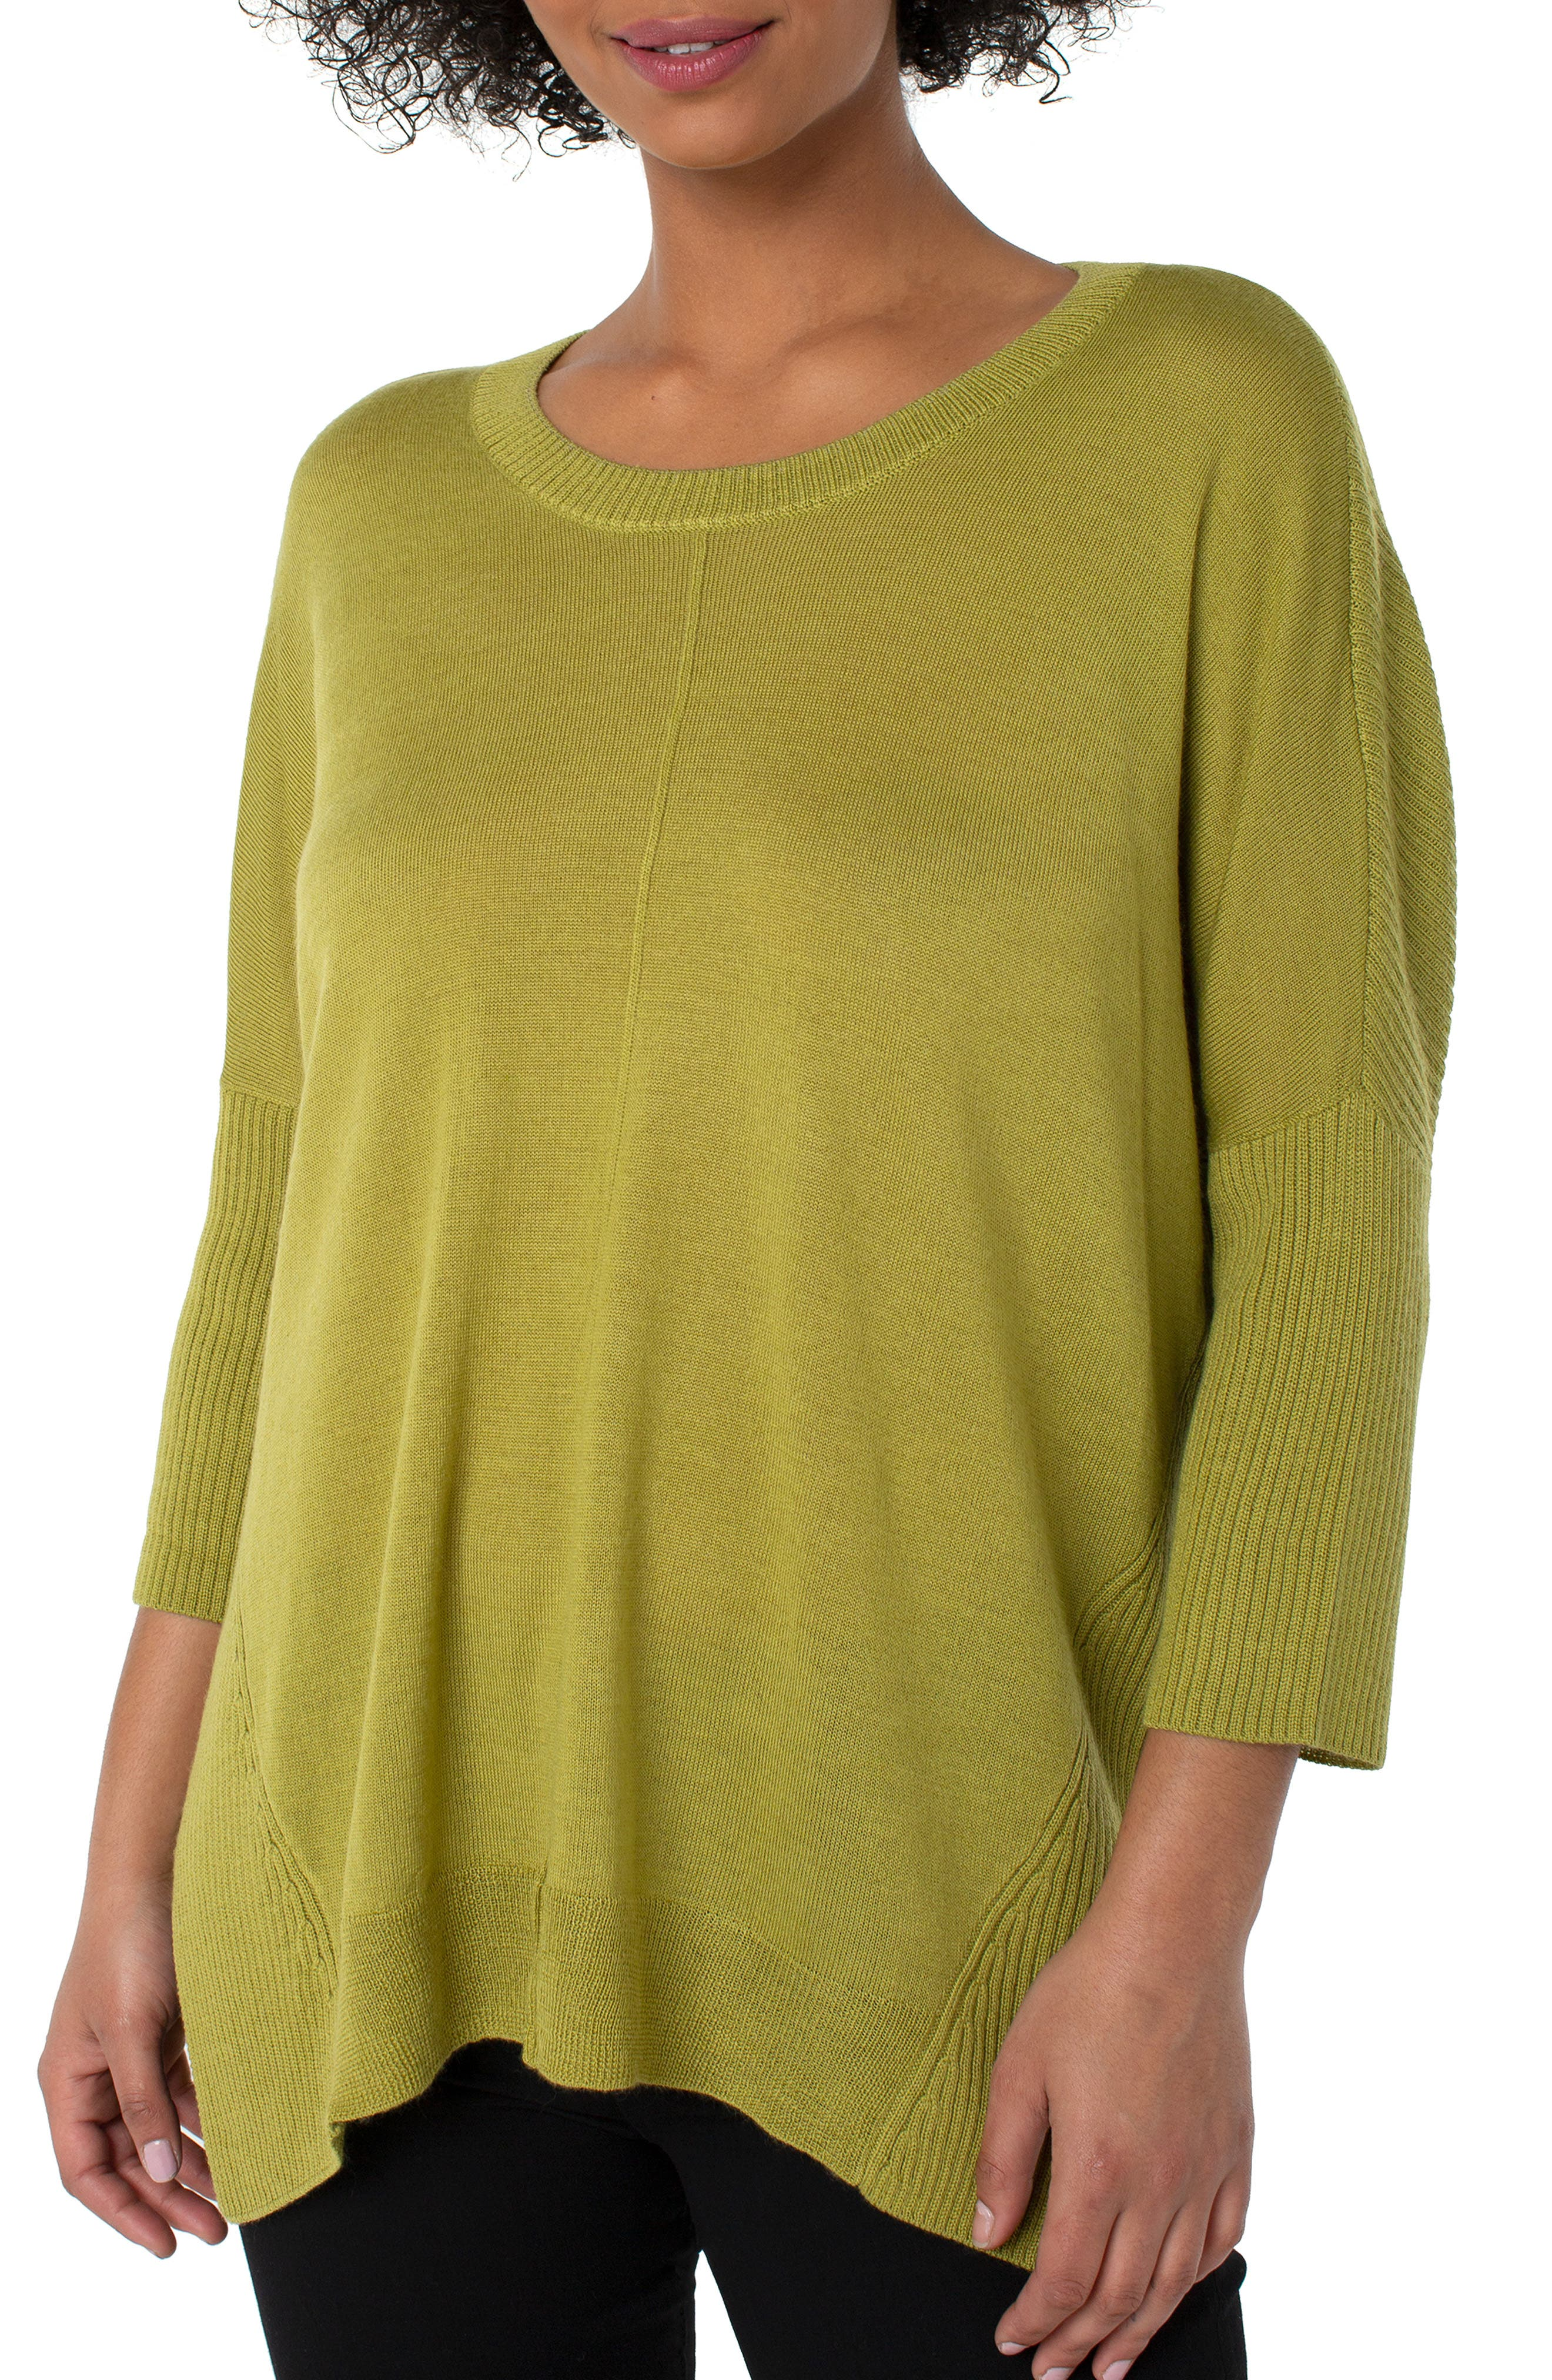 Fully Fashioned Crewneck Wool Blend Sweater